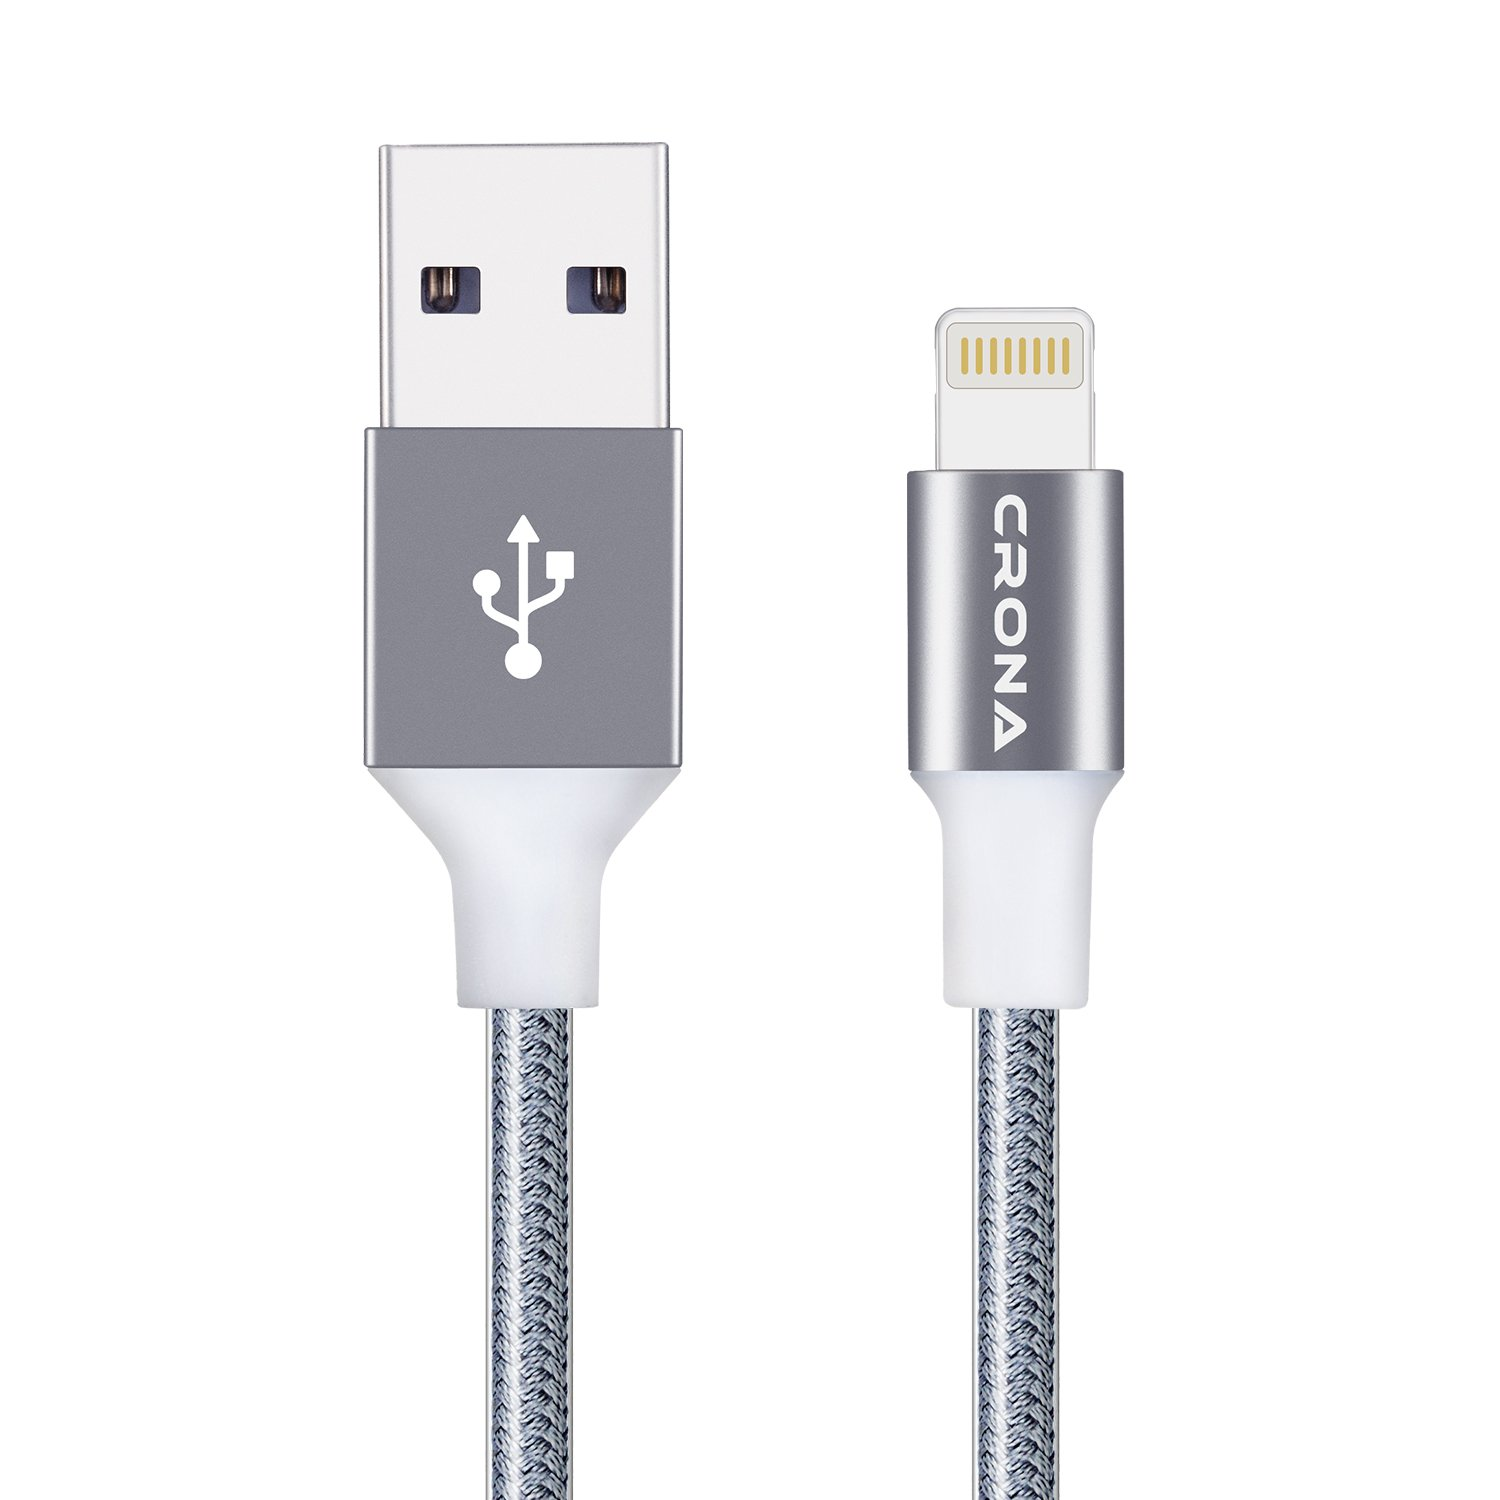 Amazon.com: CRONA Lightning Cables apple ,iPhone Charging Cable ...